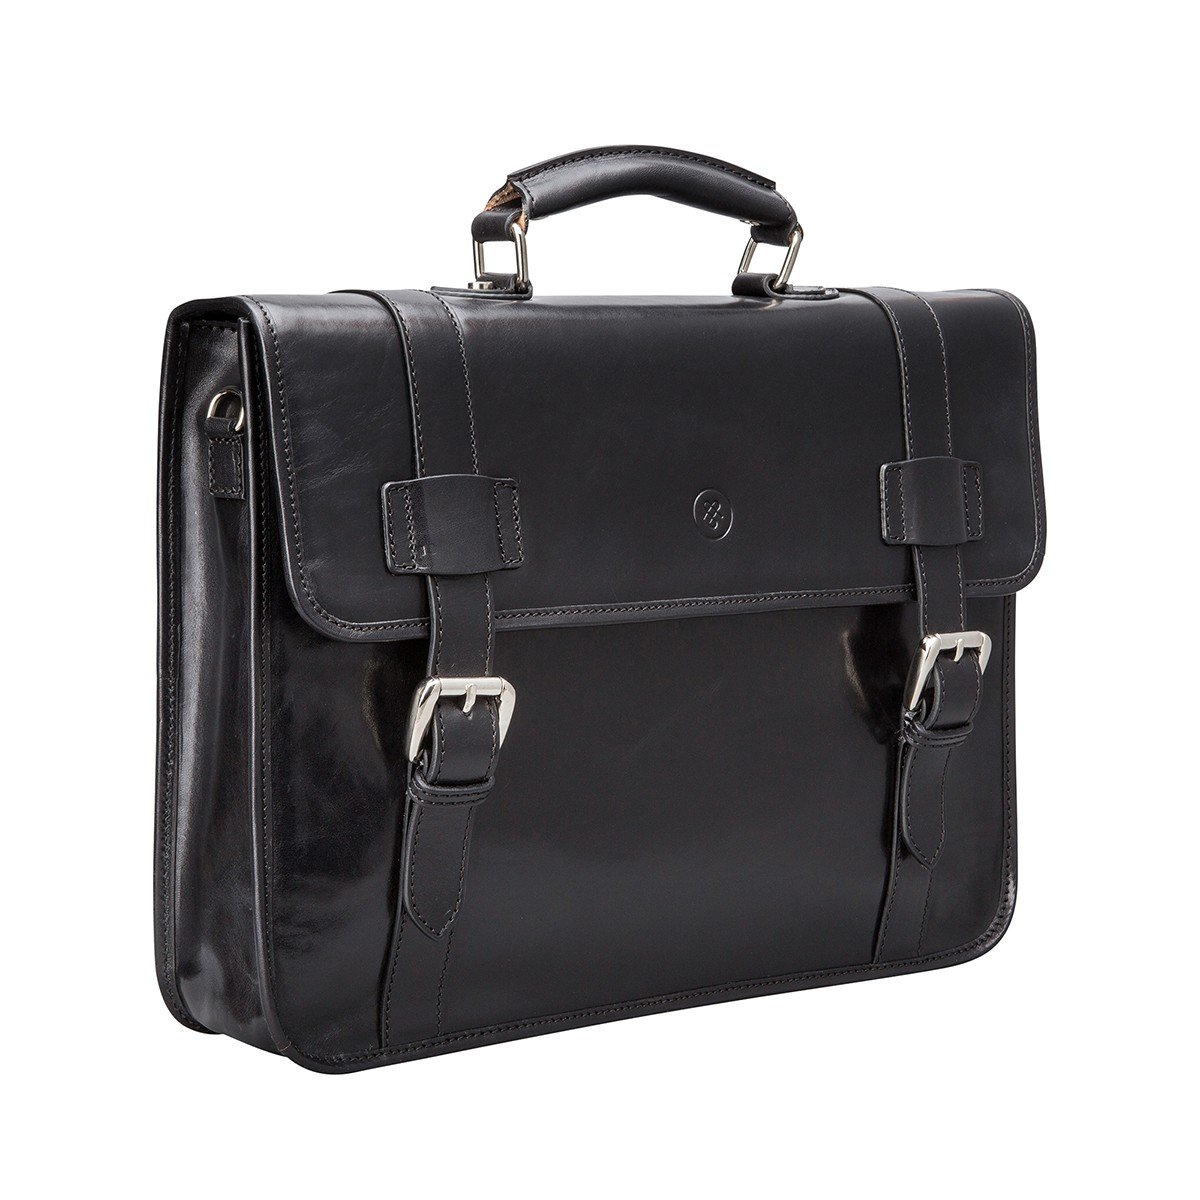 Maxwell Scott Mens Black Leather Backpack Briefcase (Micheli) by Maxwell Scott Bags (Image #3)